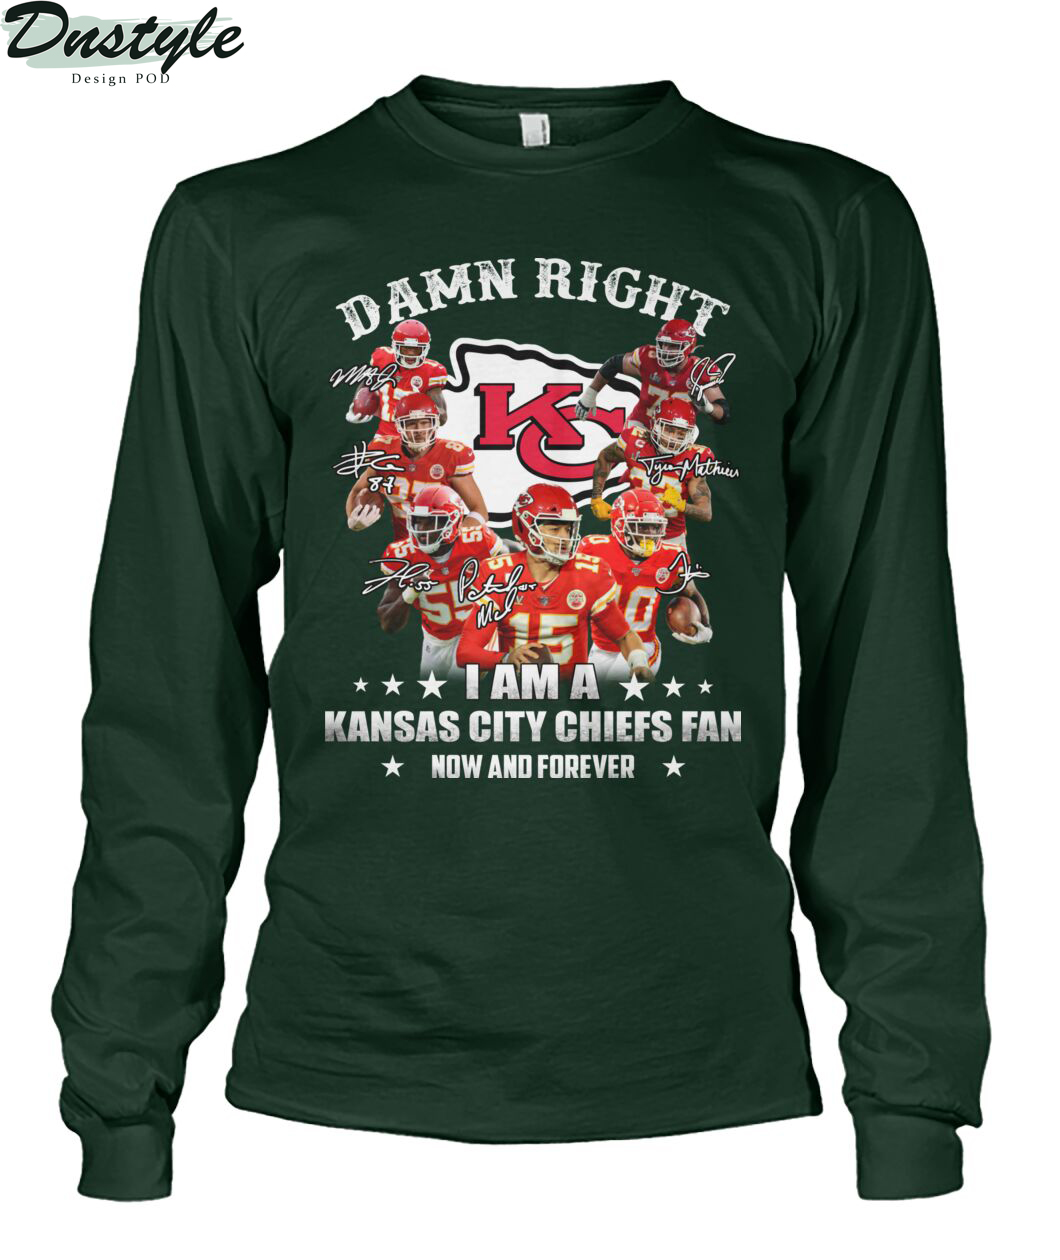 Damn right I am a Kansas city chiefs fan now and forever long sleeve